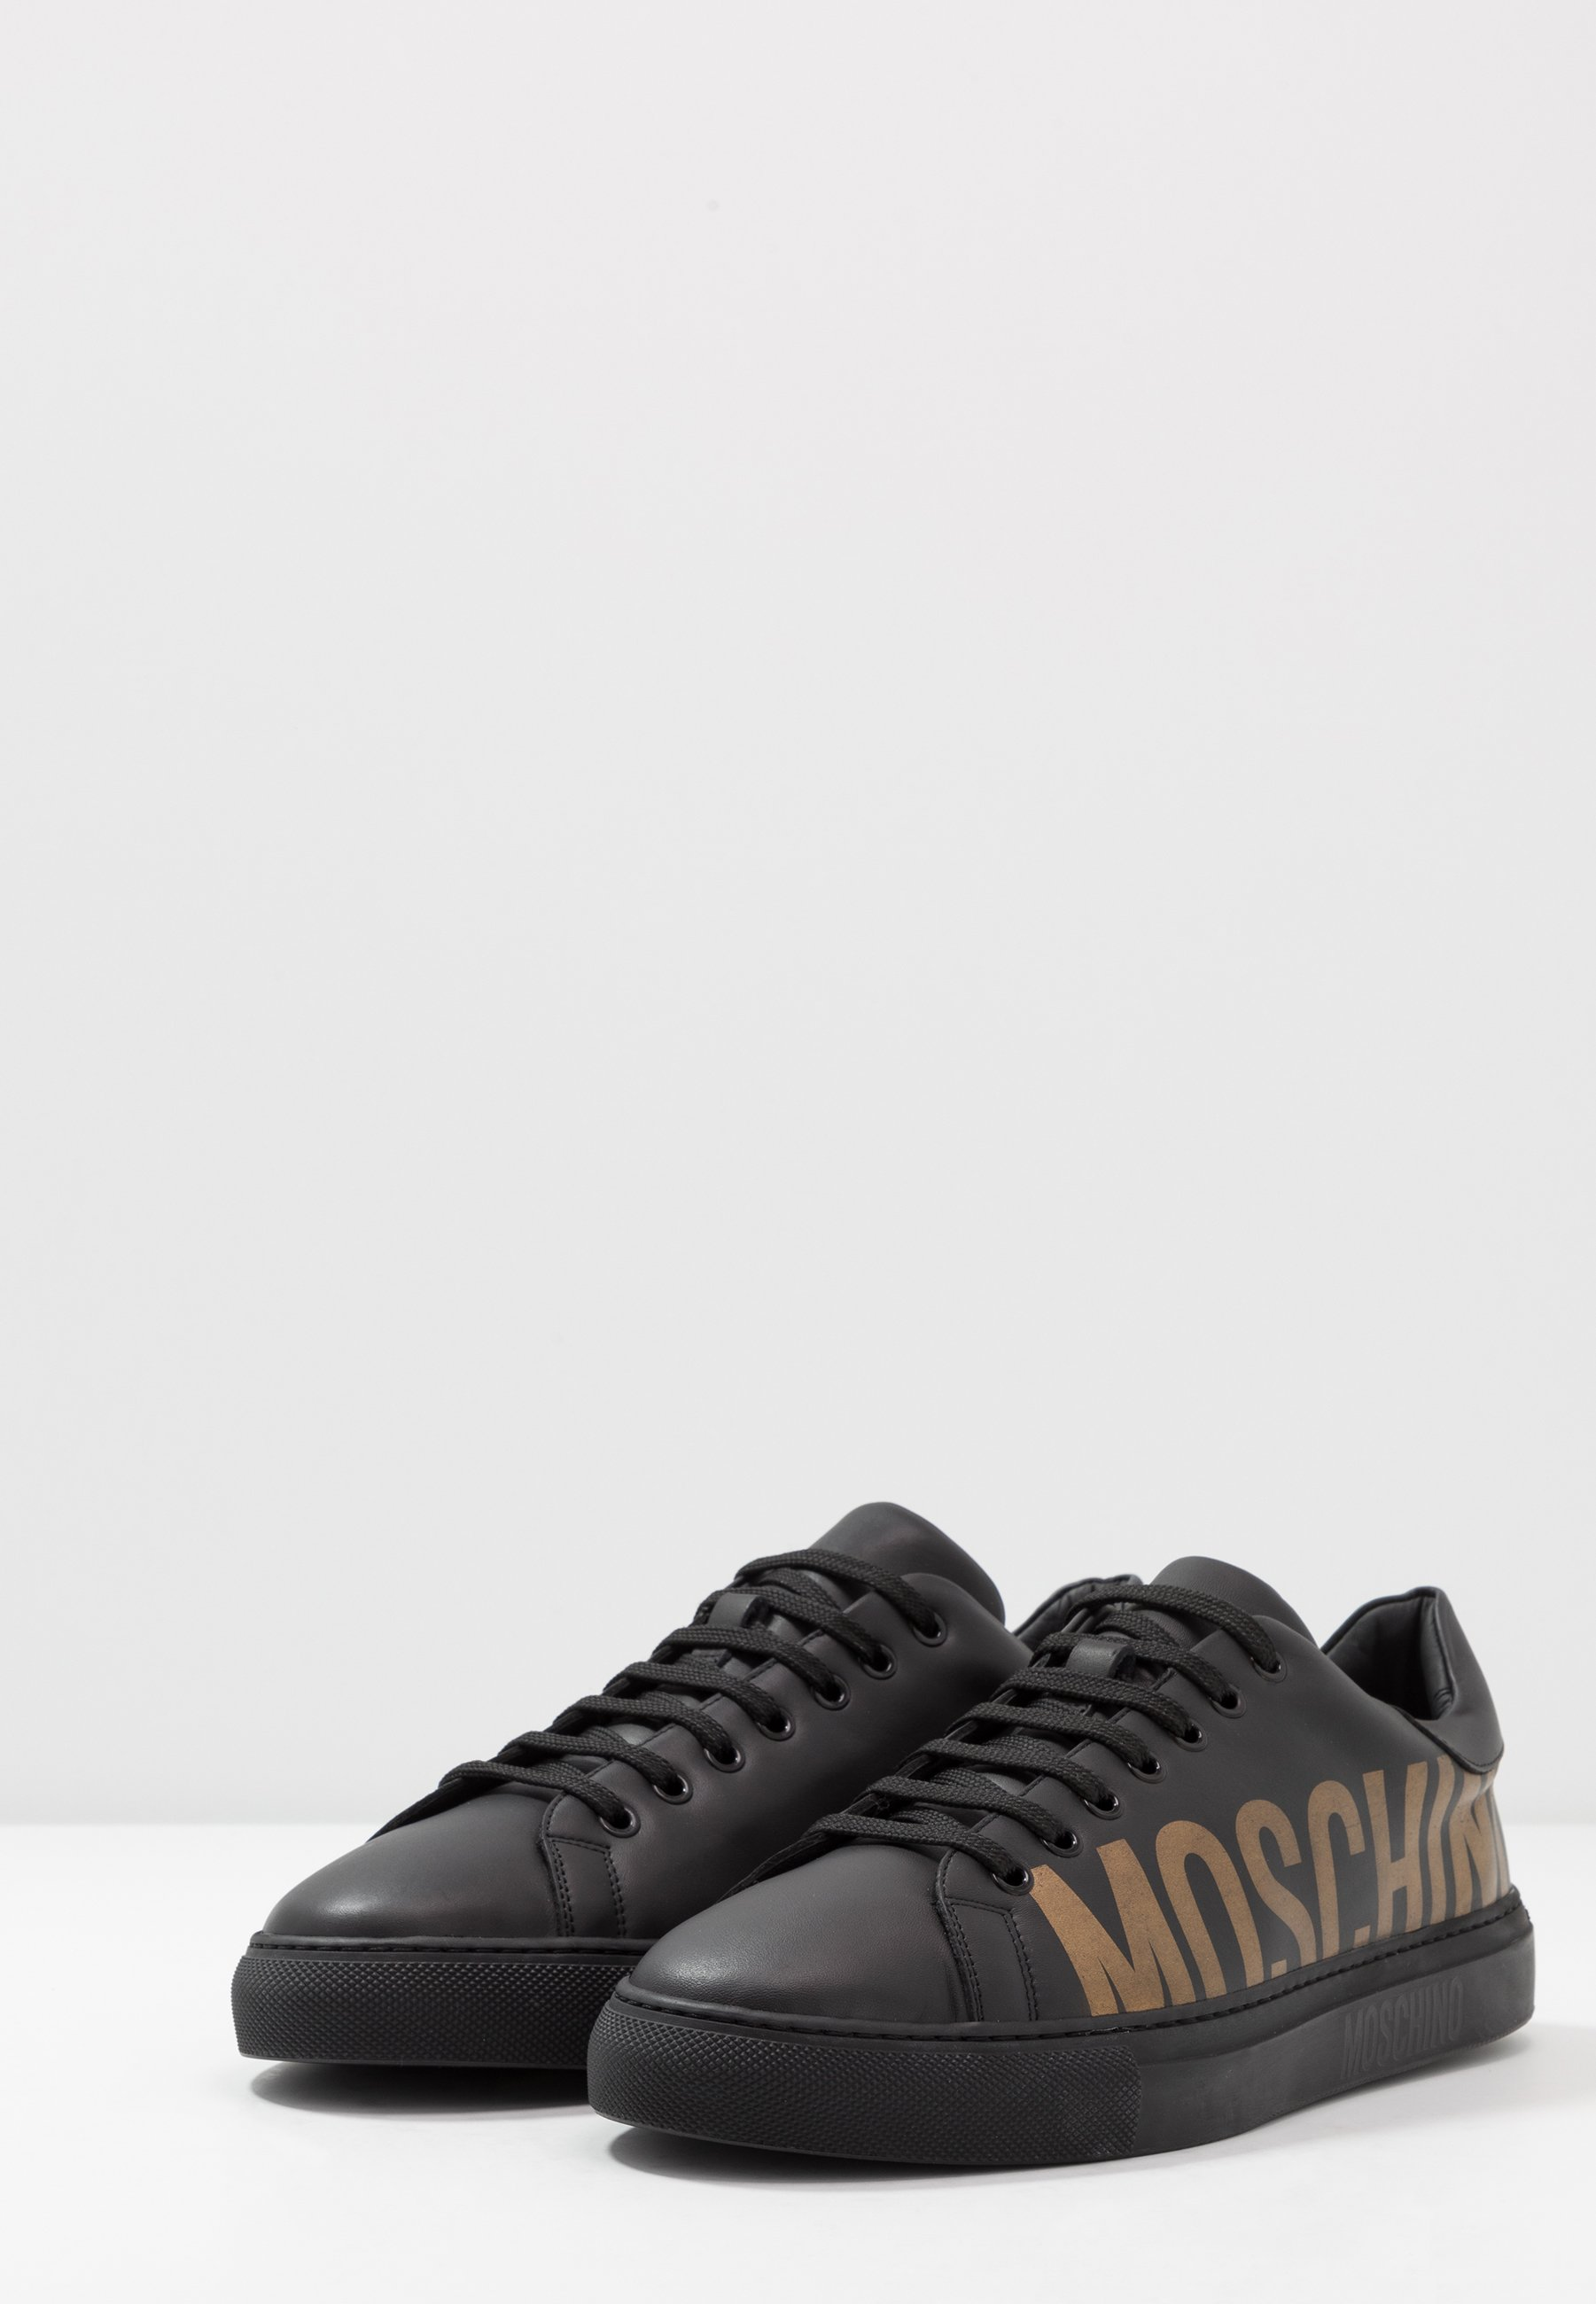 MOSCHINO Sneakers - black/gold